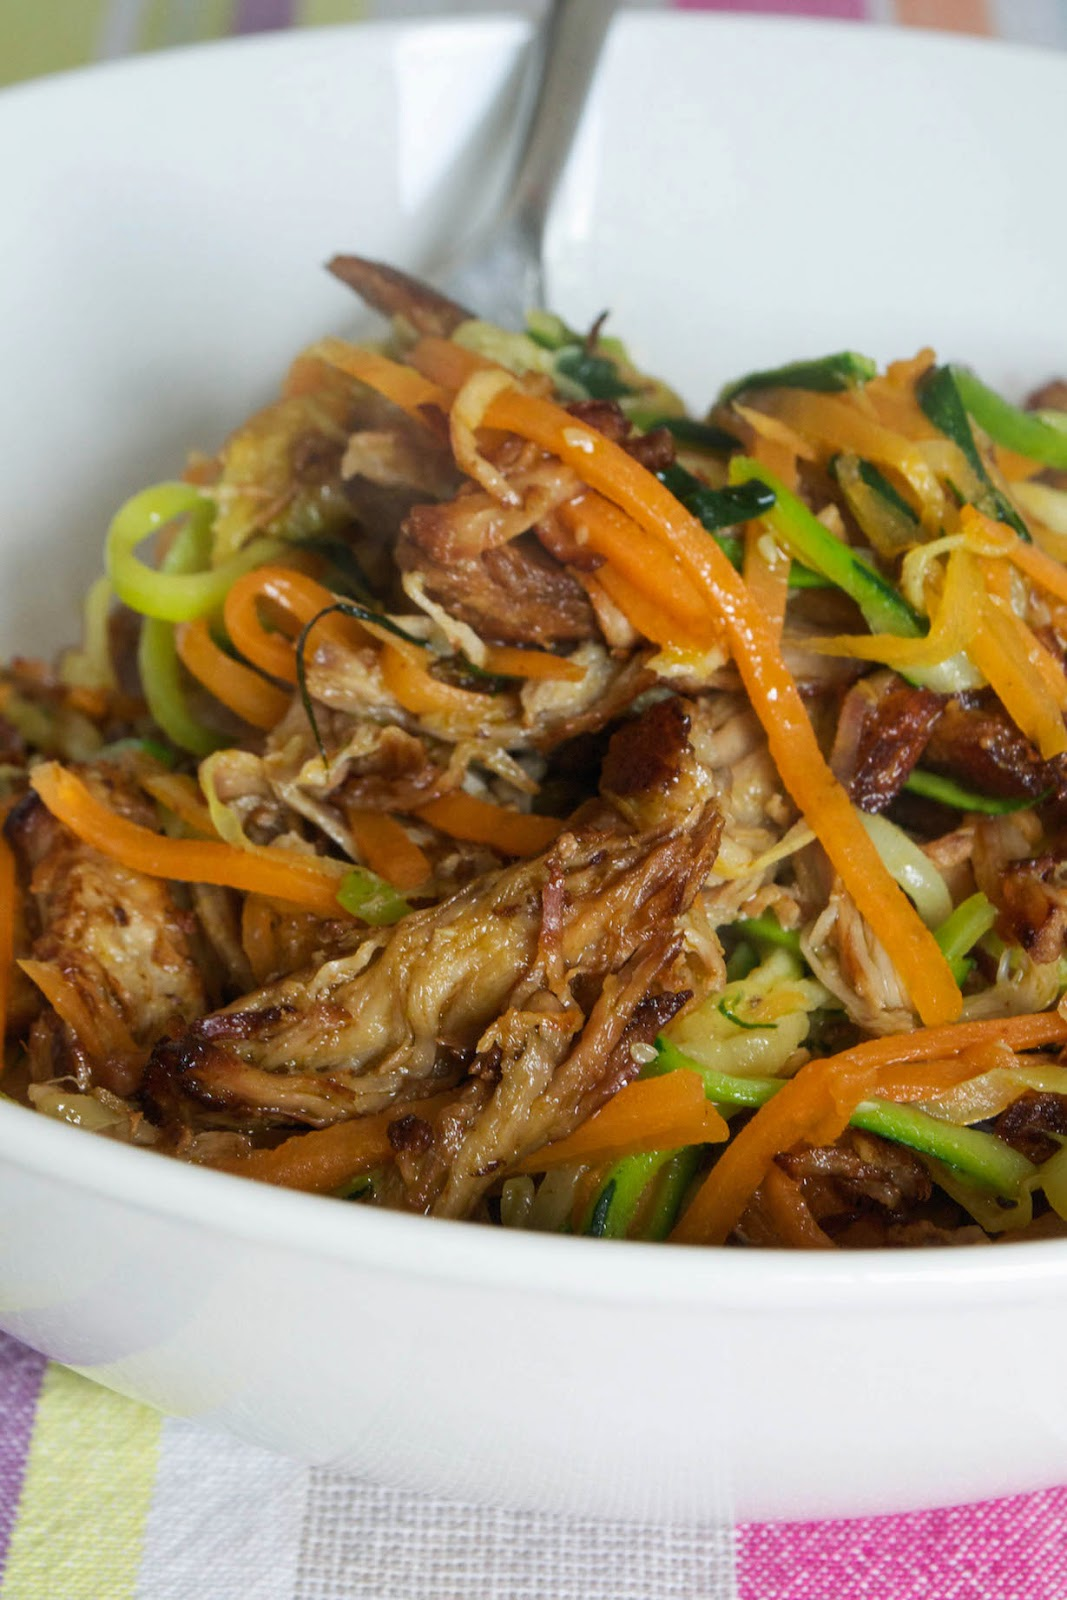 20 delicious zucchini noodle recipes that help burn fat and are 100% gluten free : Healthy ...